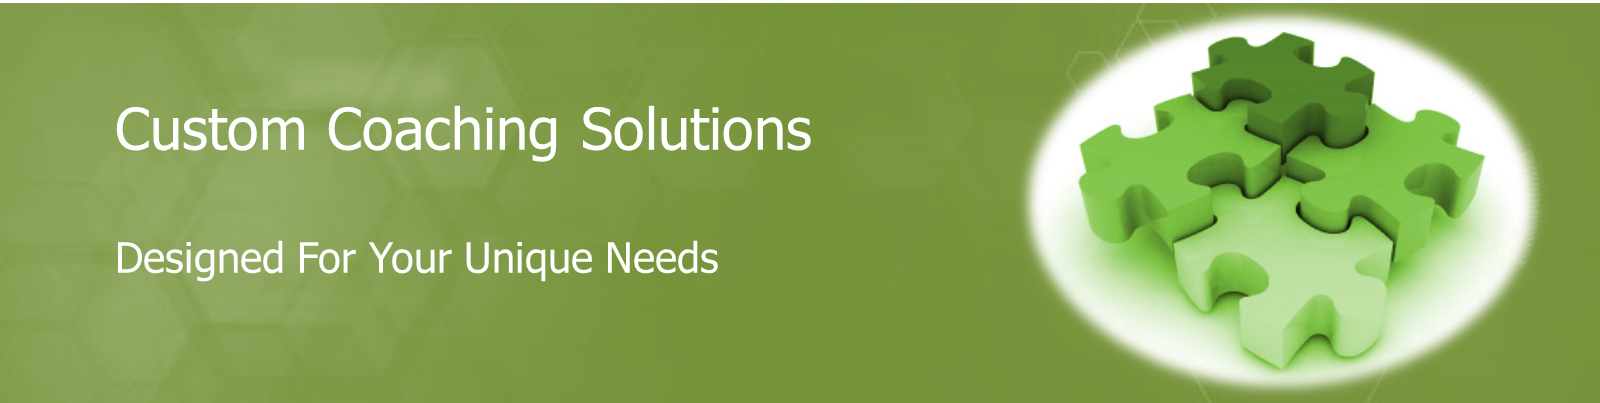 Cutsom Coaching Solutions designed for your unique needs.